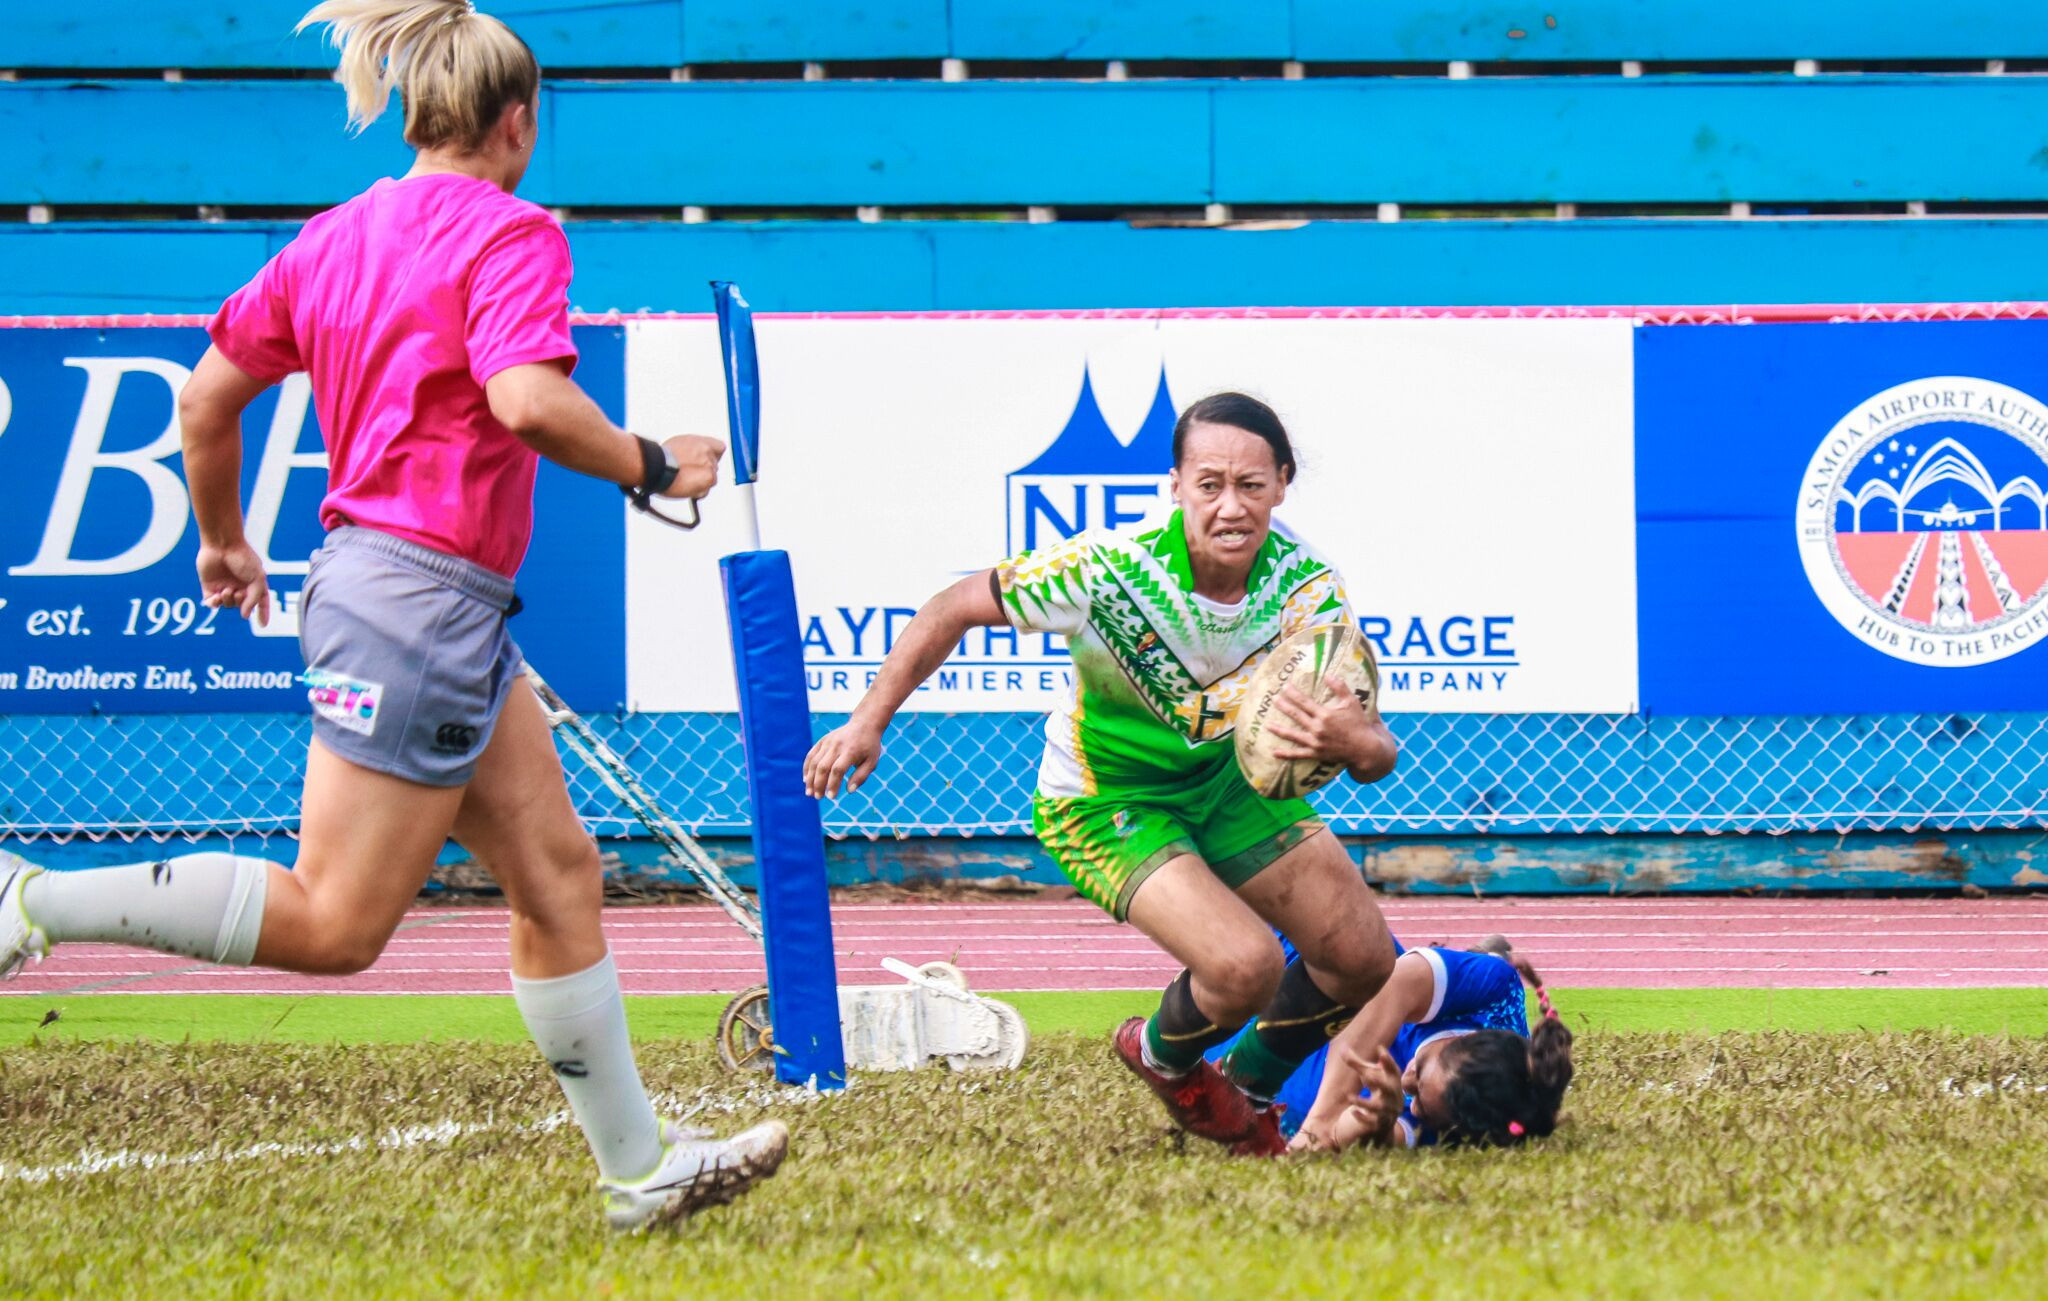 Women's rugby league debuts at Pacific Games as football and cricket see huge wins